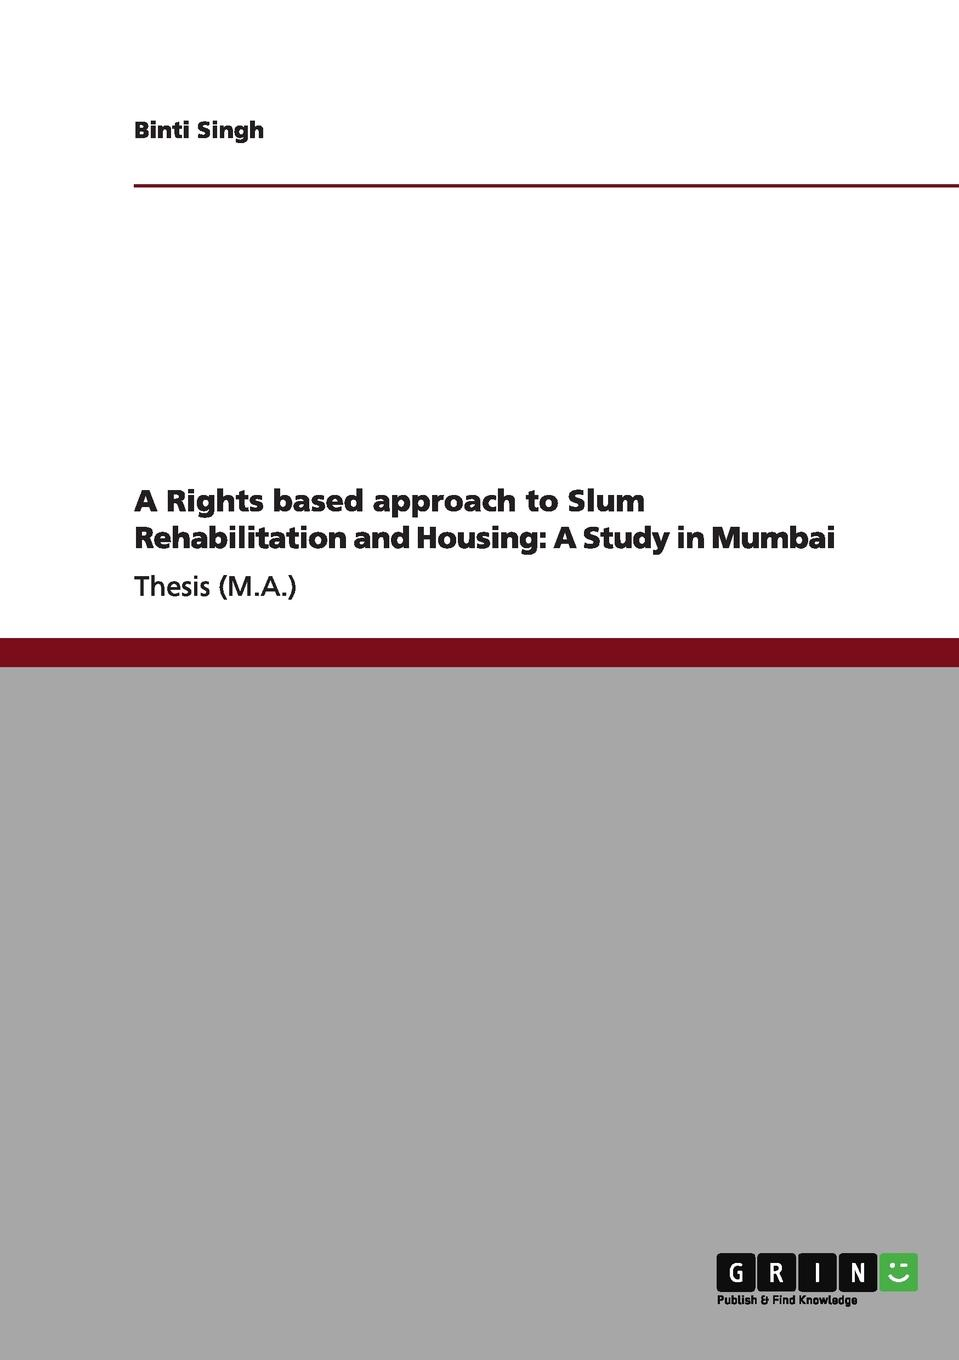 Binti Singh A Rights based approach to Slum Rehabilitation and Housing. A Study in Mumbai patrick geddes cities in evolution an introduction to the town planning movement and to the study of civics